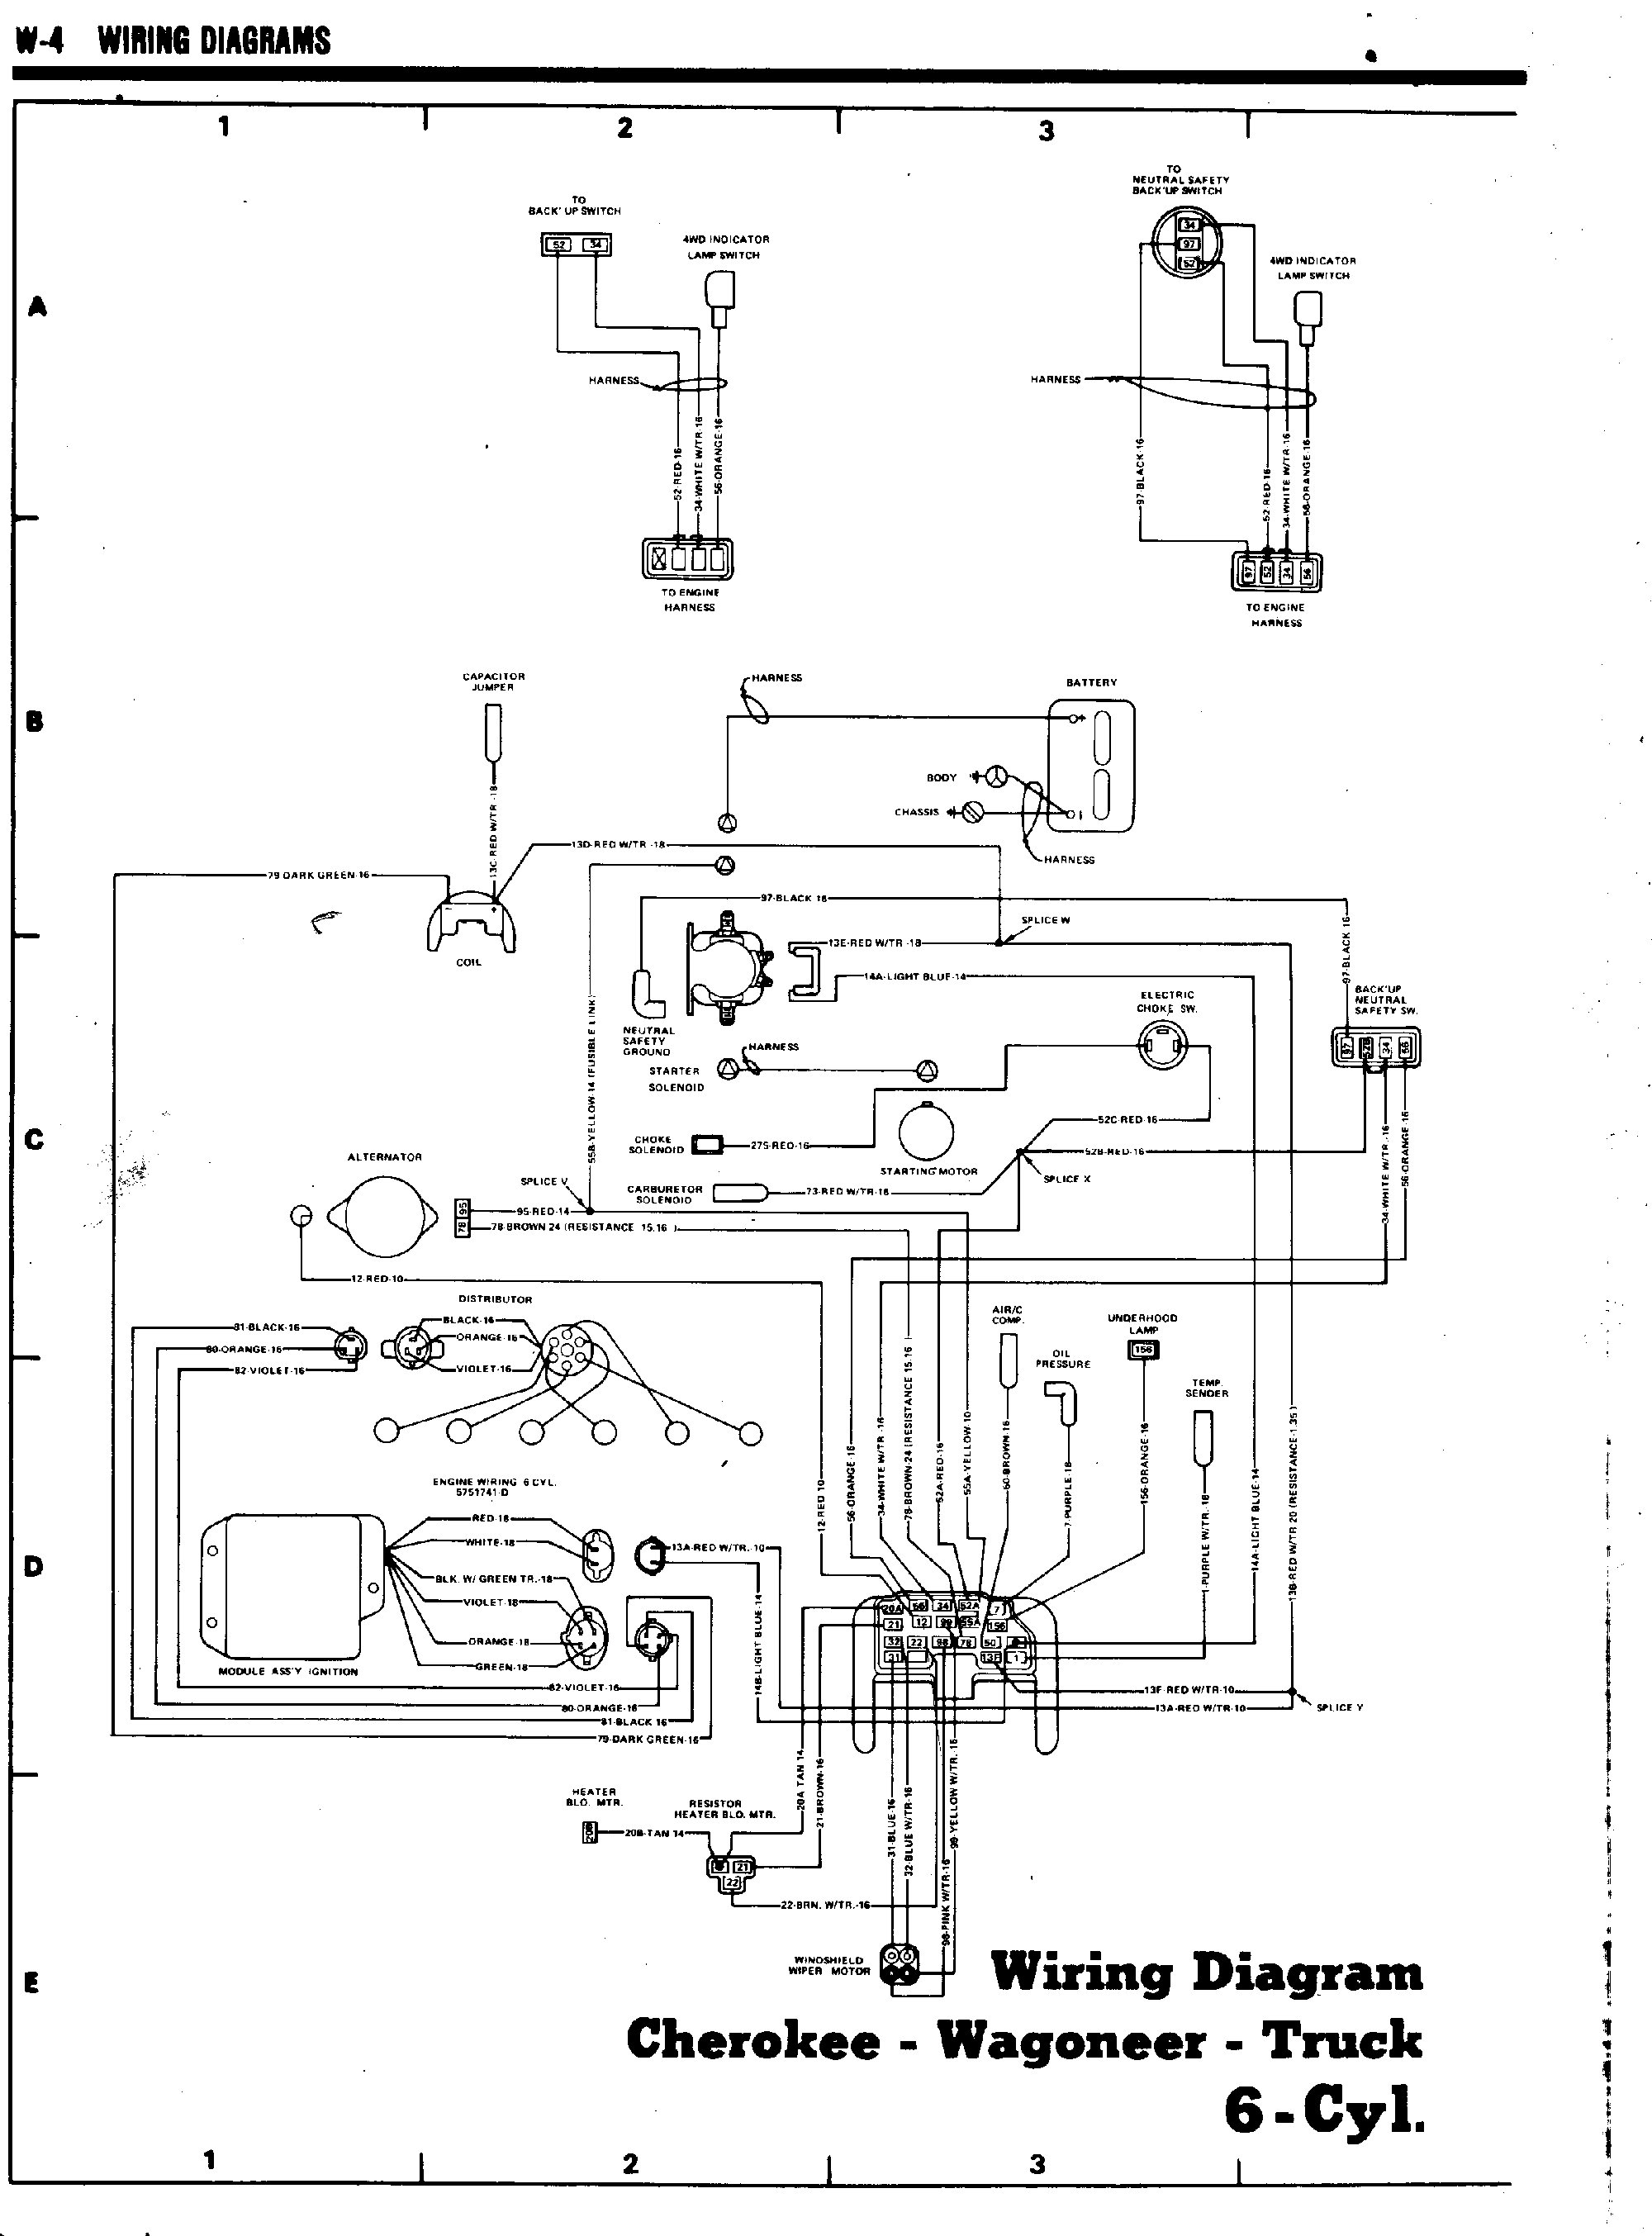 1977 Jeep Cherokee Chief Wiring Diagram Worksheet And 1999 Grand Harness Tom Oljeep Collins Fsj Page Rh Com